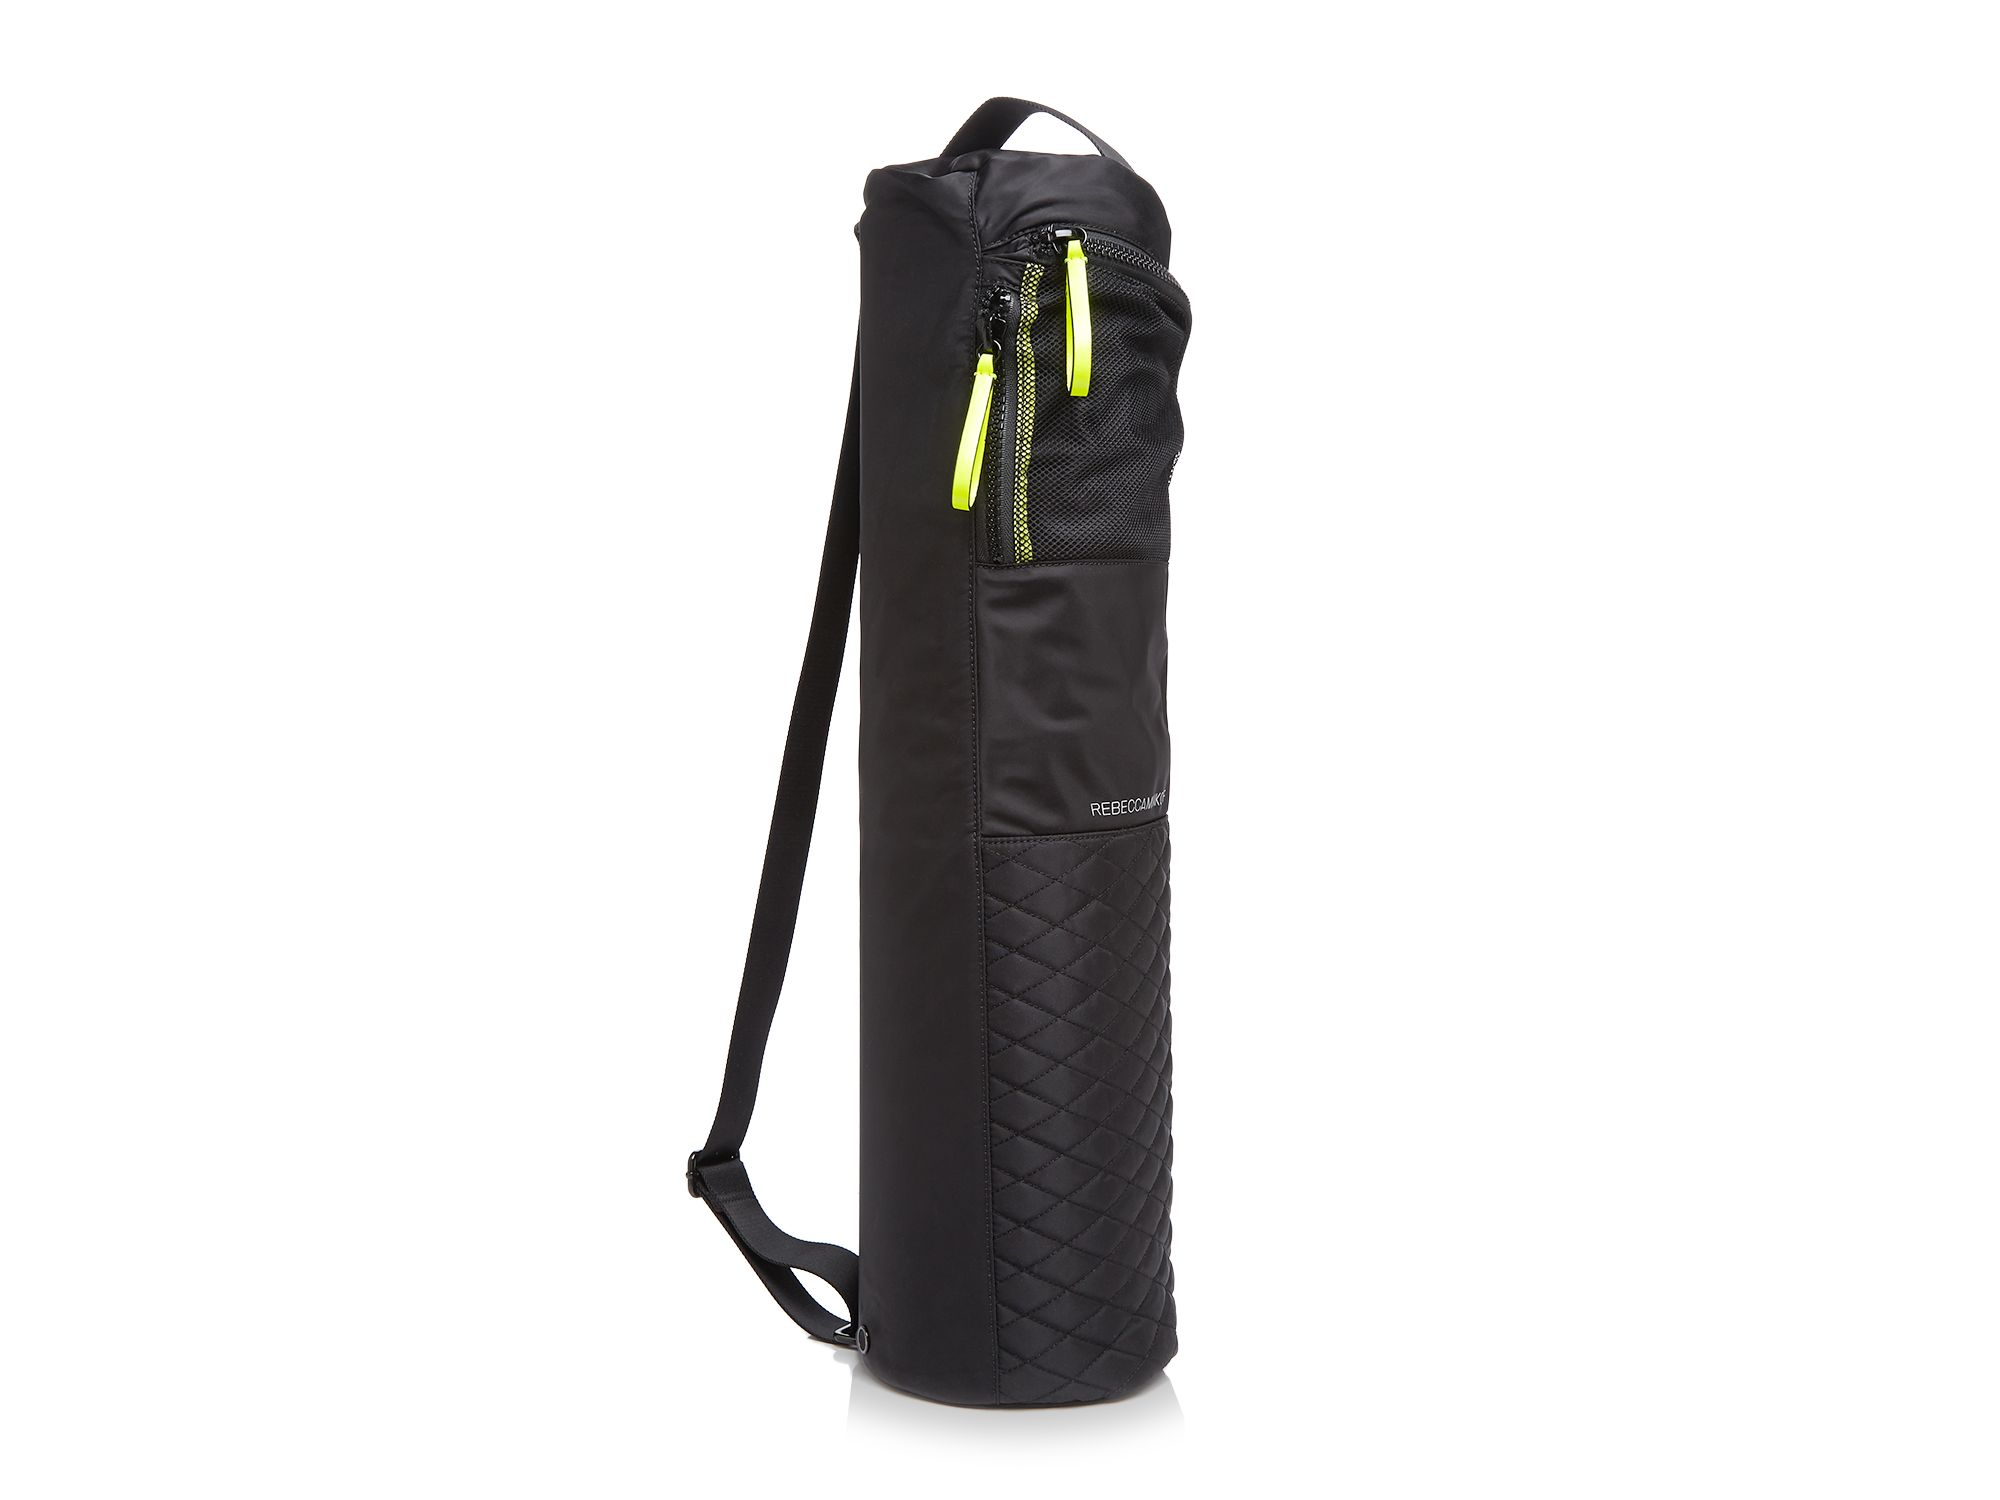 All yoga bag styles including totes and mat carriers. The ultimate usability & comfort to fit your yoga mat and props. Designed by Yogis for Yogis on-the-go. Breathe Easy Yoga Bag - Black. $ go move mat carrier - indulge. $ go move mat carrier - new moon.